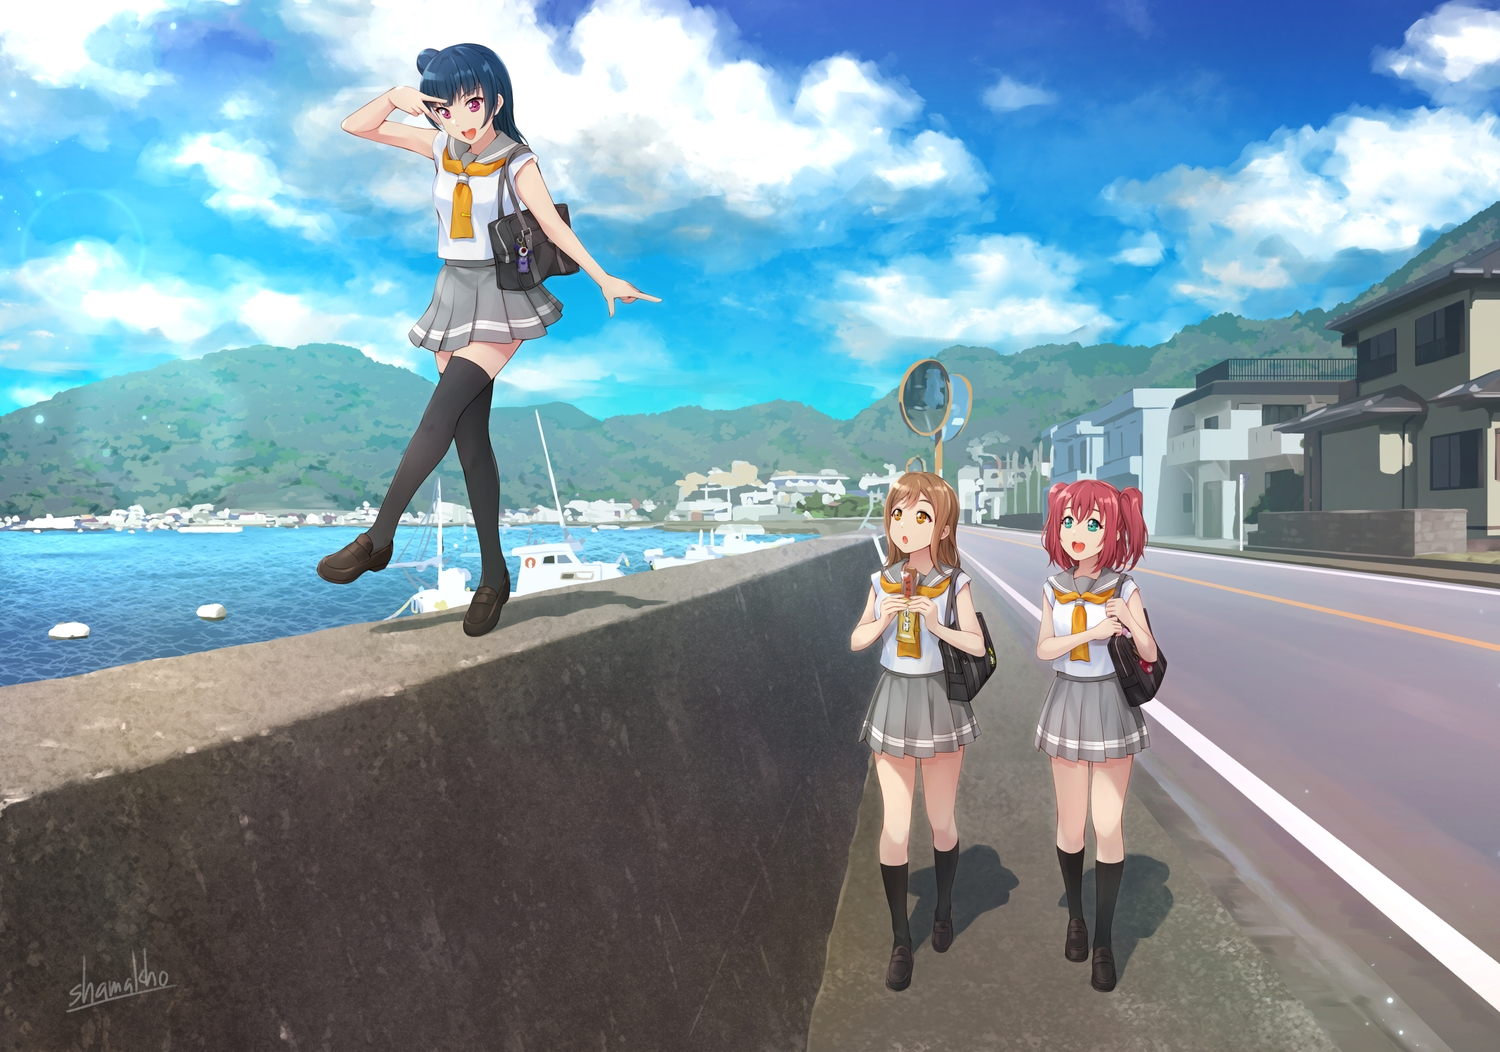 blue_hair brown_hair building city clouds food green_eyes kneehighs kunikida_hanamaru kurosawa_ruby long_hair love_live!_school_idol_project love_live!_sunshine!! orange_eyes purple_eyes red_hair school_uniform shamakho signed skirt sky thighhighs tsushima_yoshiko twintails water zettai_ryouiki